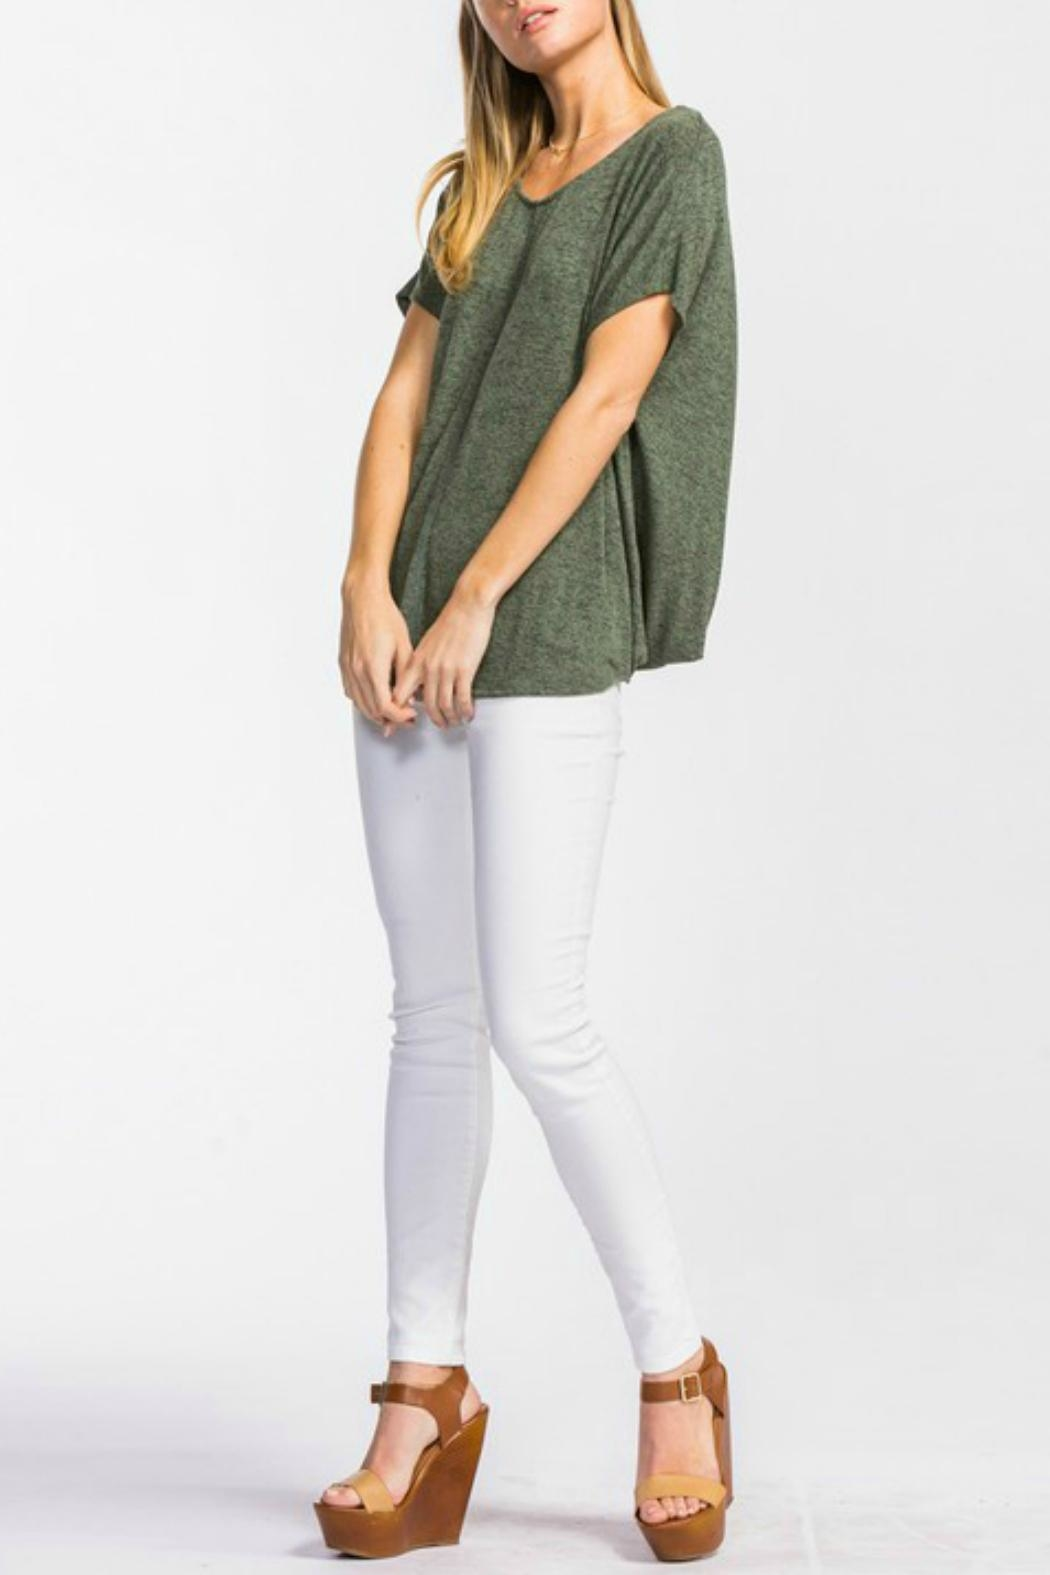 Cherish Olive Knit Top - Side Cropped Image